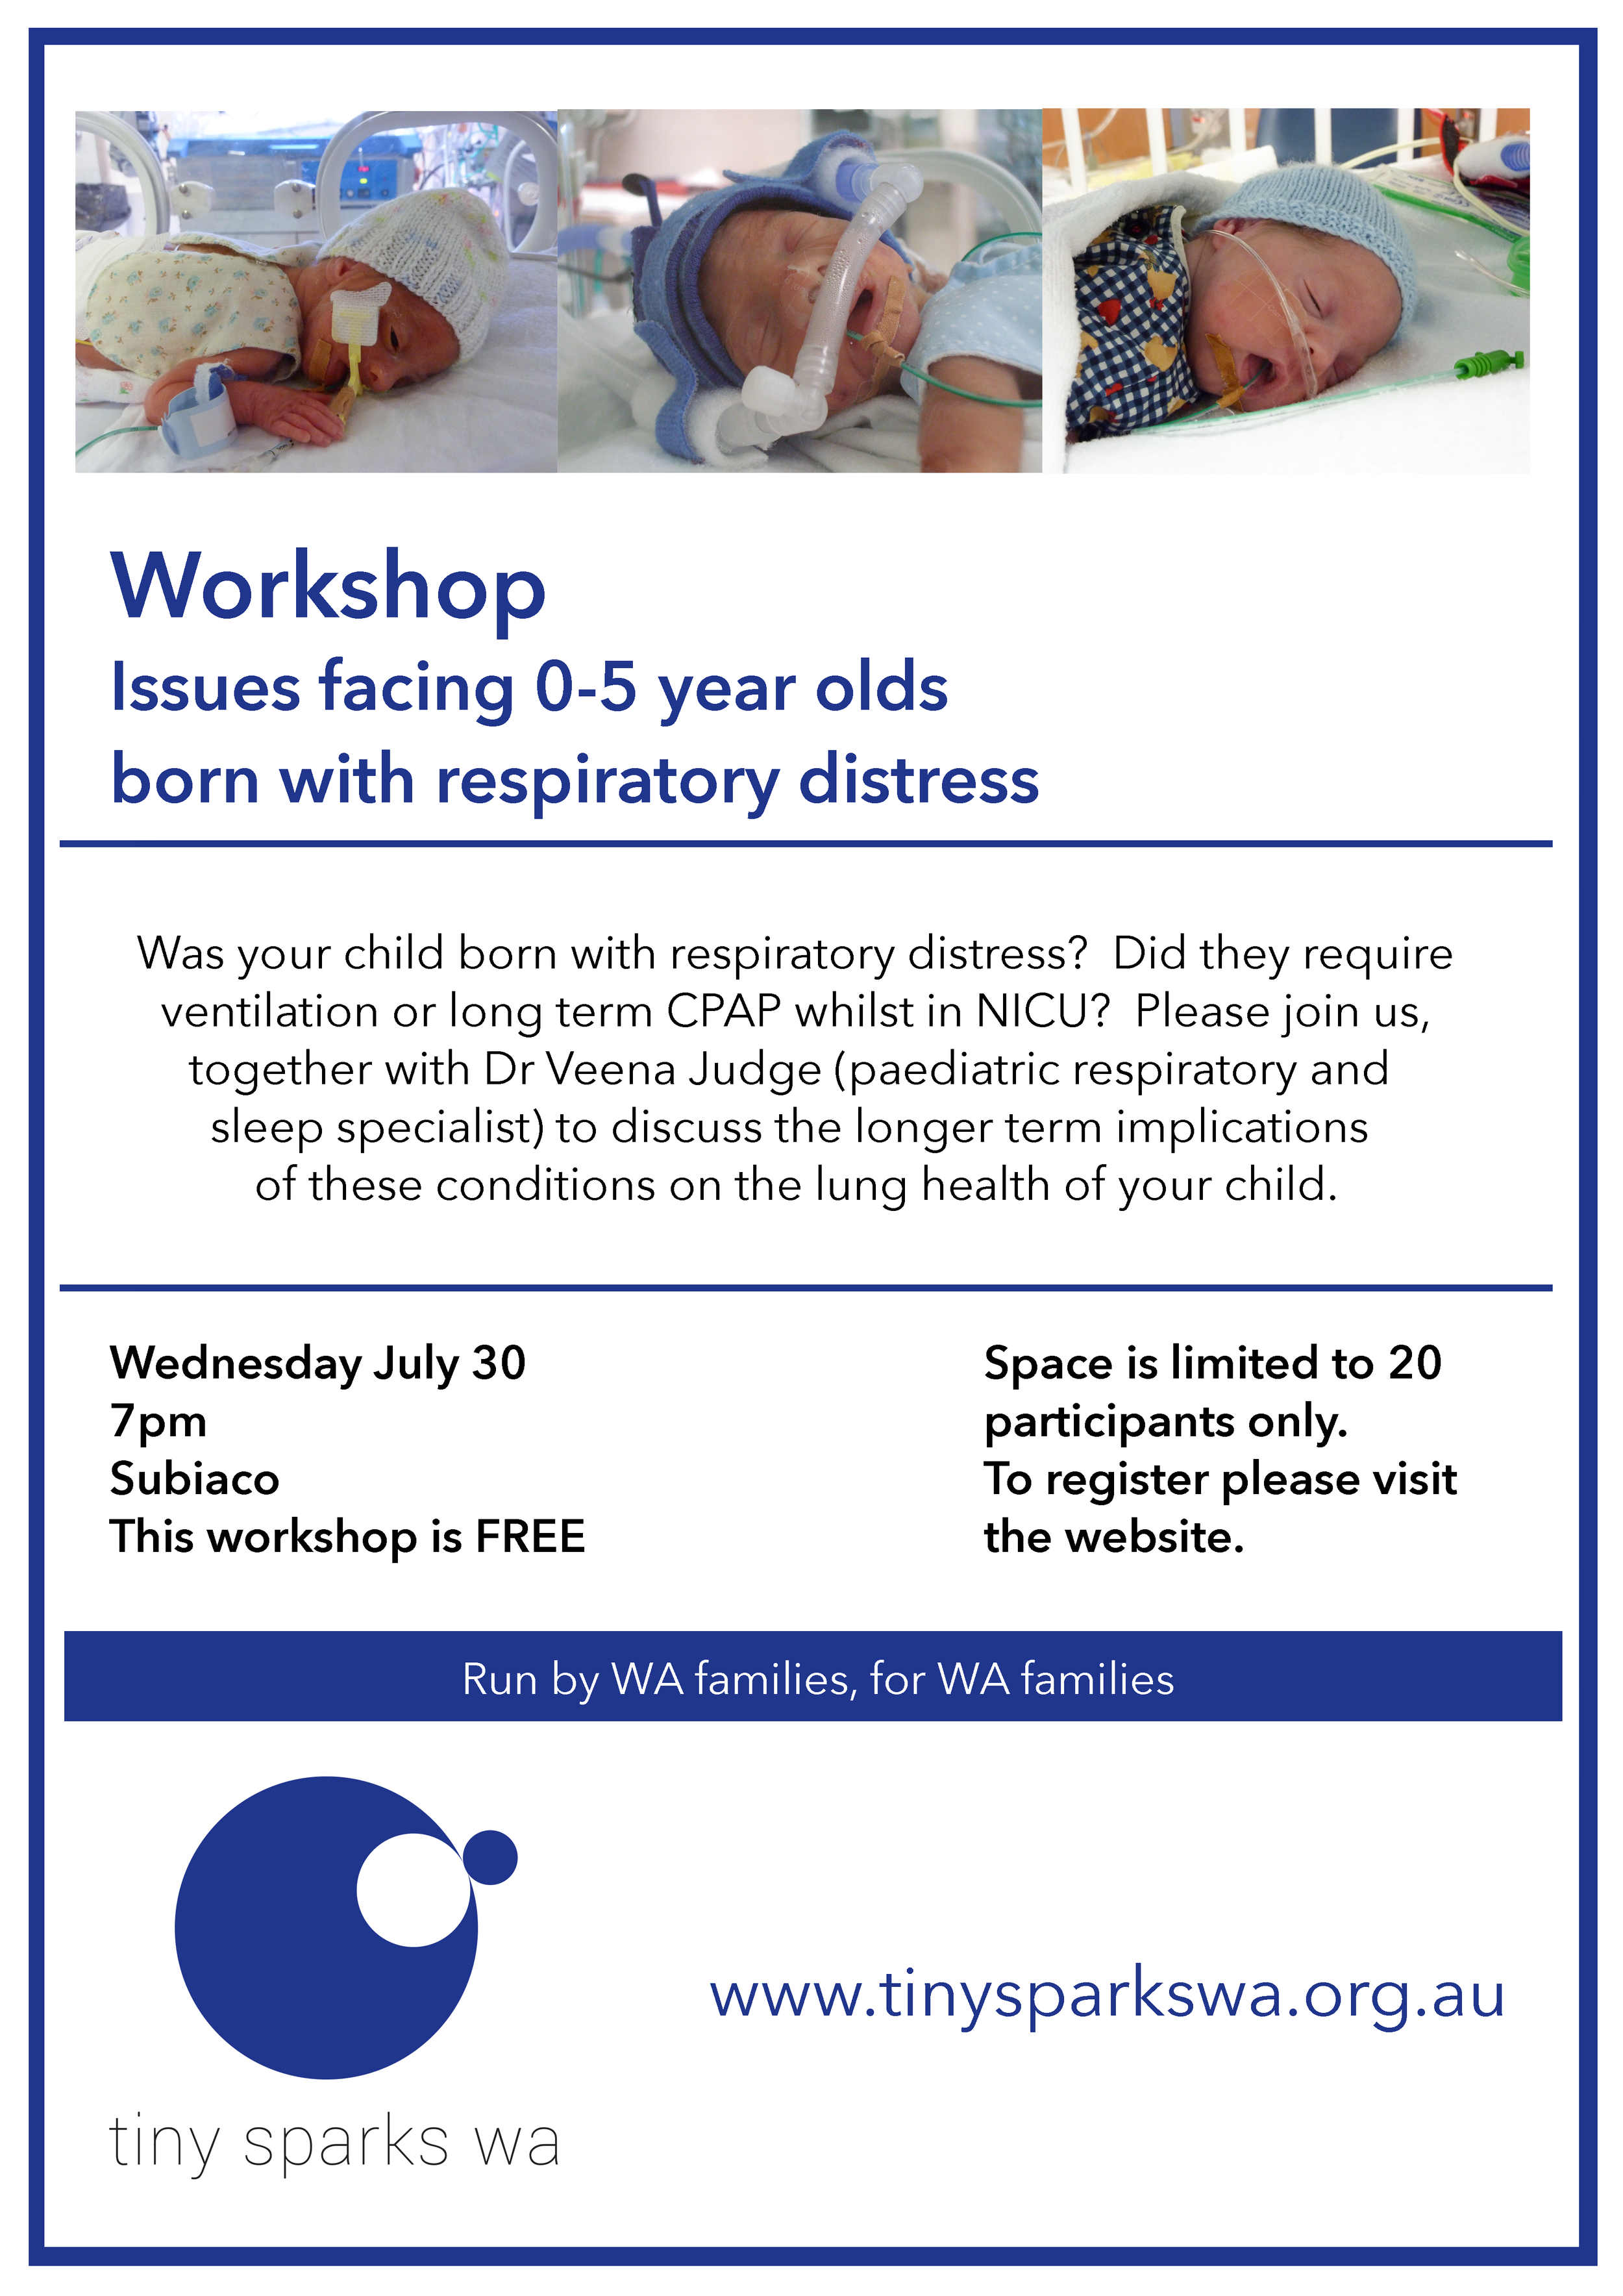 Workshop - Issues facing 0-5 year olds born with respiratory distress